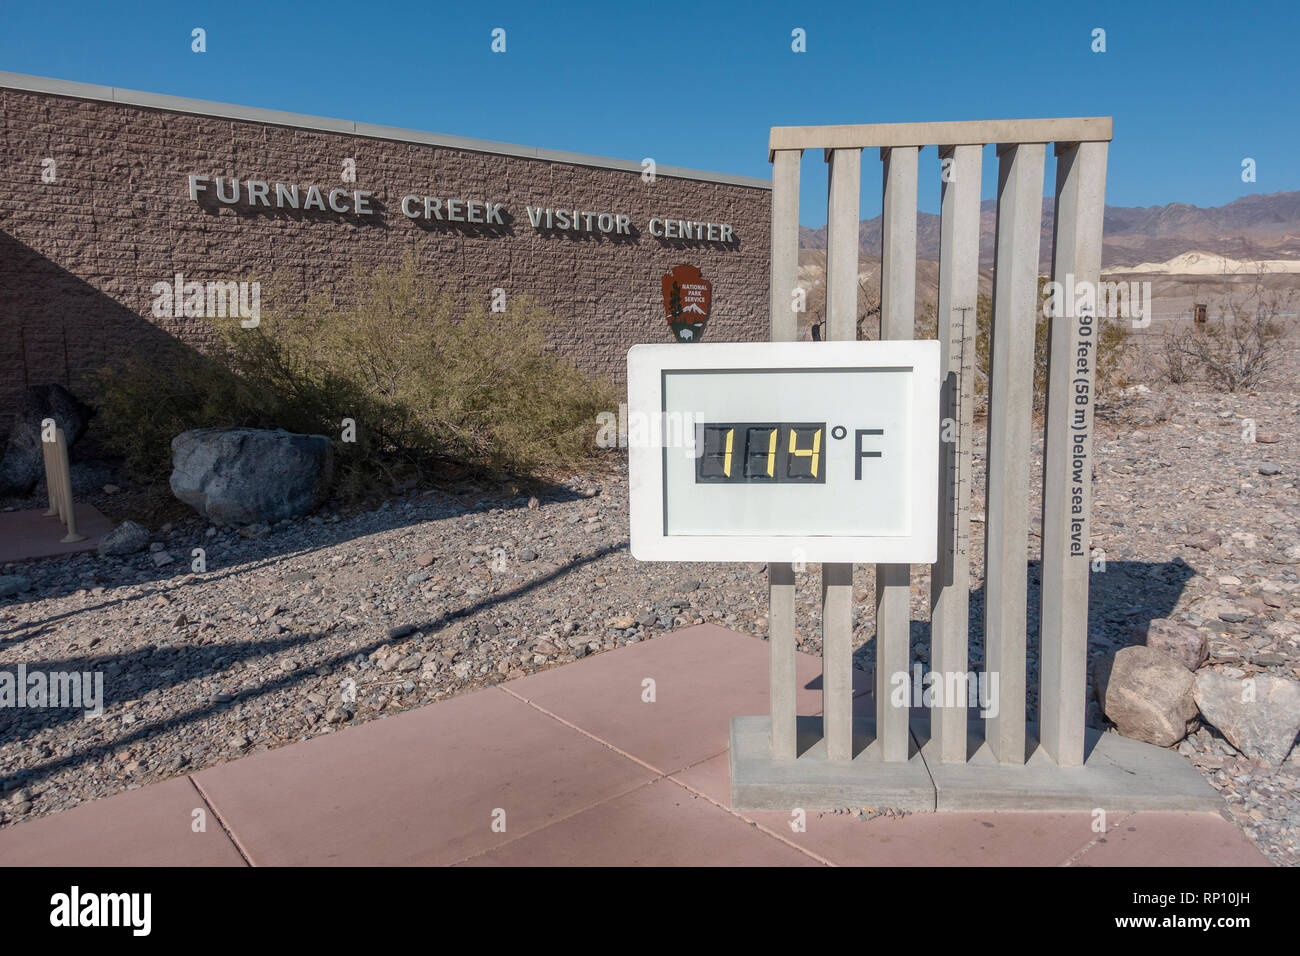 Temperature gauge showing 114℉ (45.6°C) outside the Furnace Creek Visitor Center, Furnace Creek, California, United States. - Stock Image